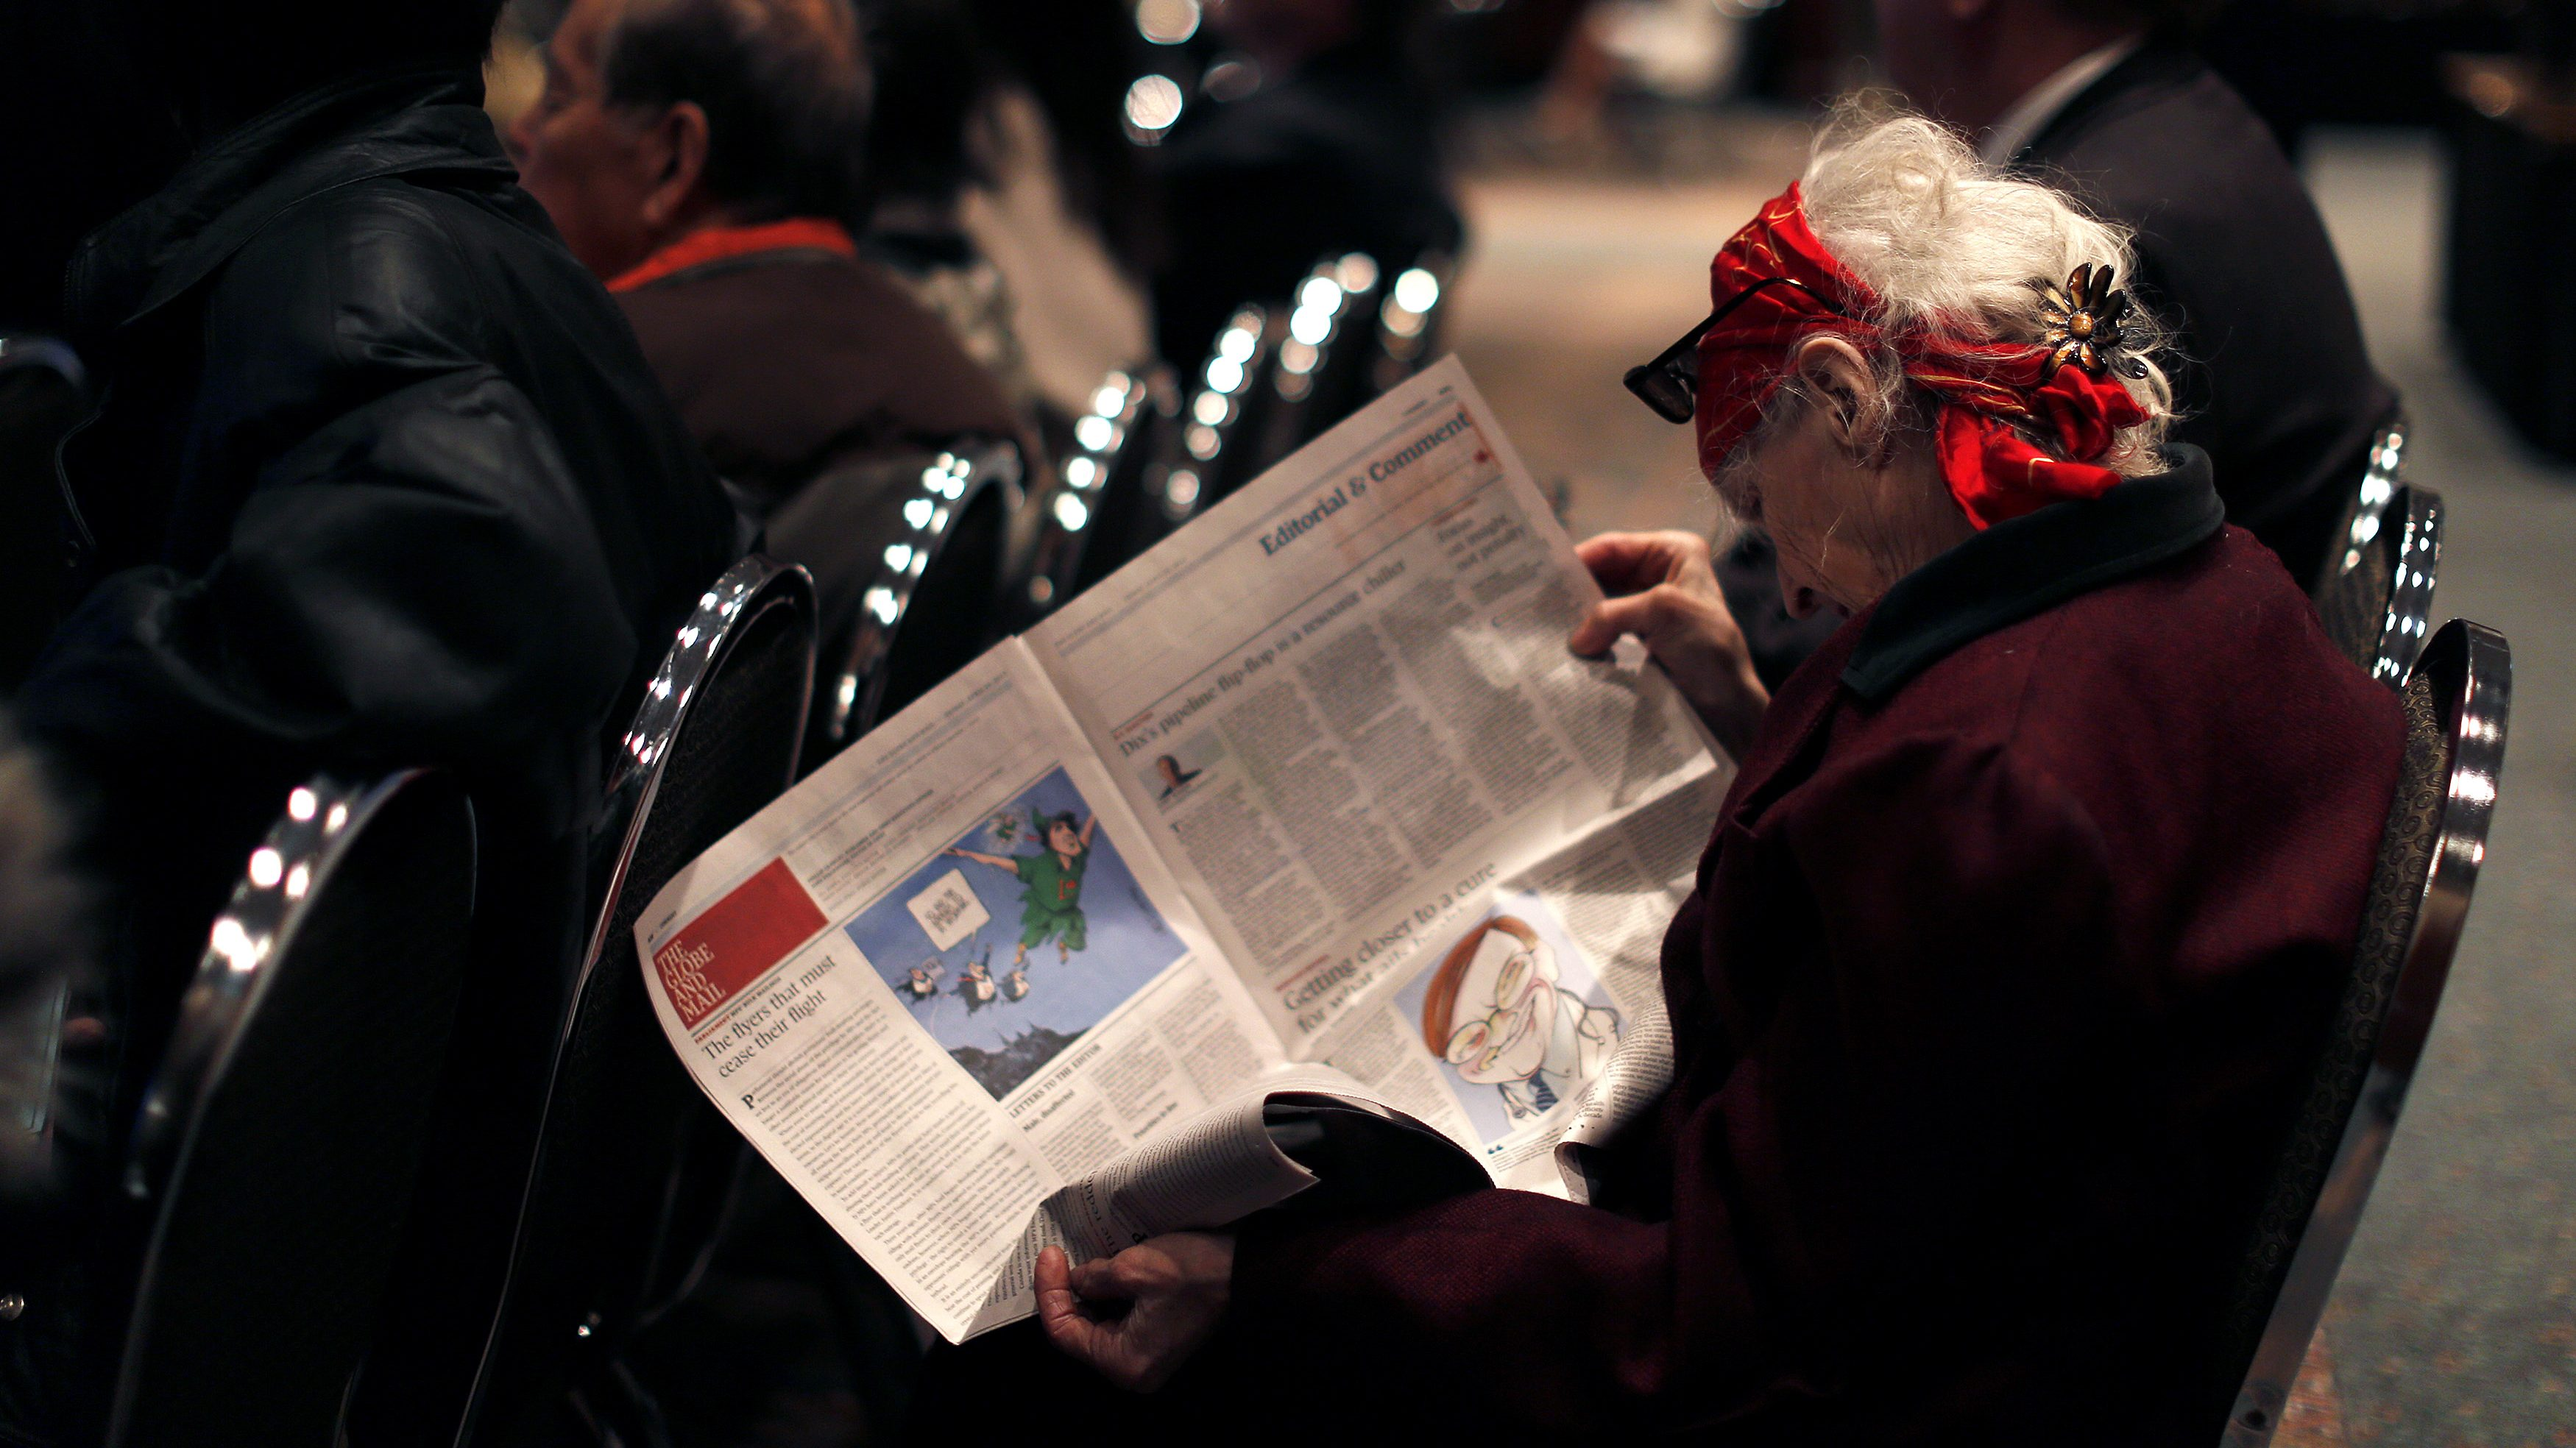 A woman reads The Globe and Mail newspaper at the TransCanada annual general meeting in Calgary